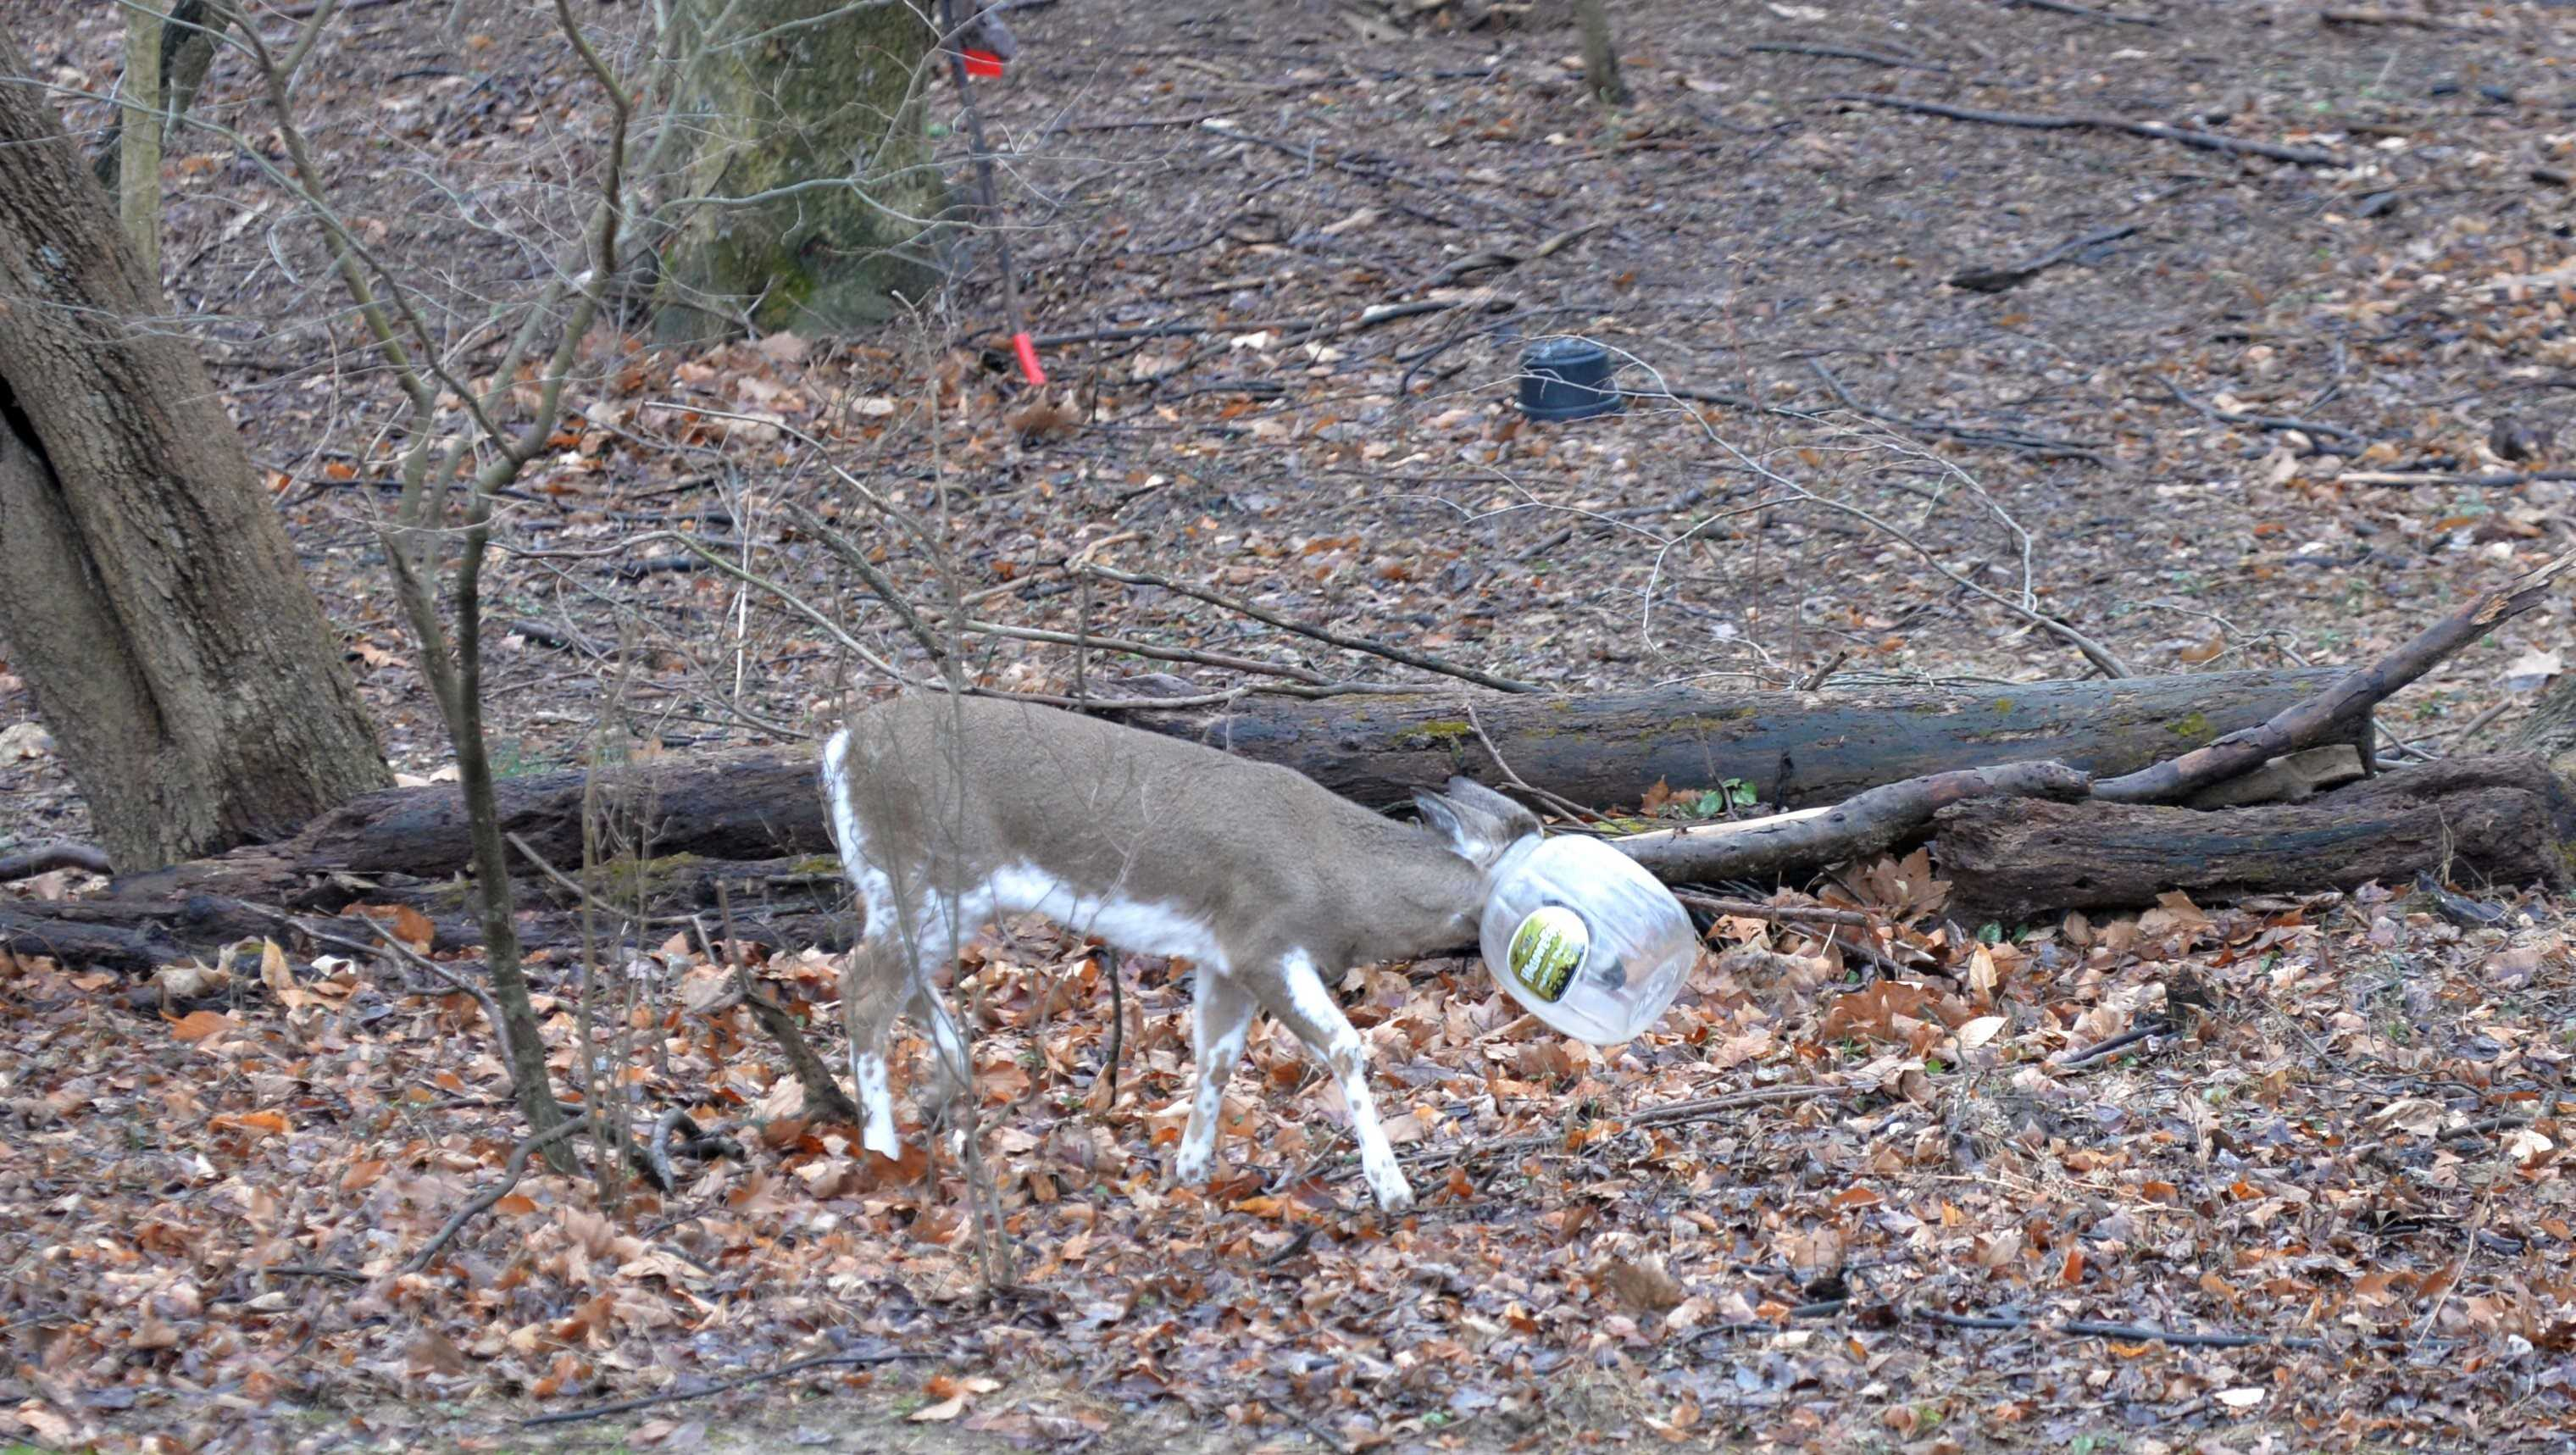 deer's head stuck in bucket